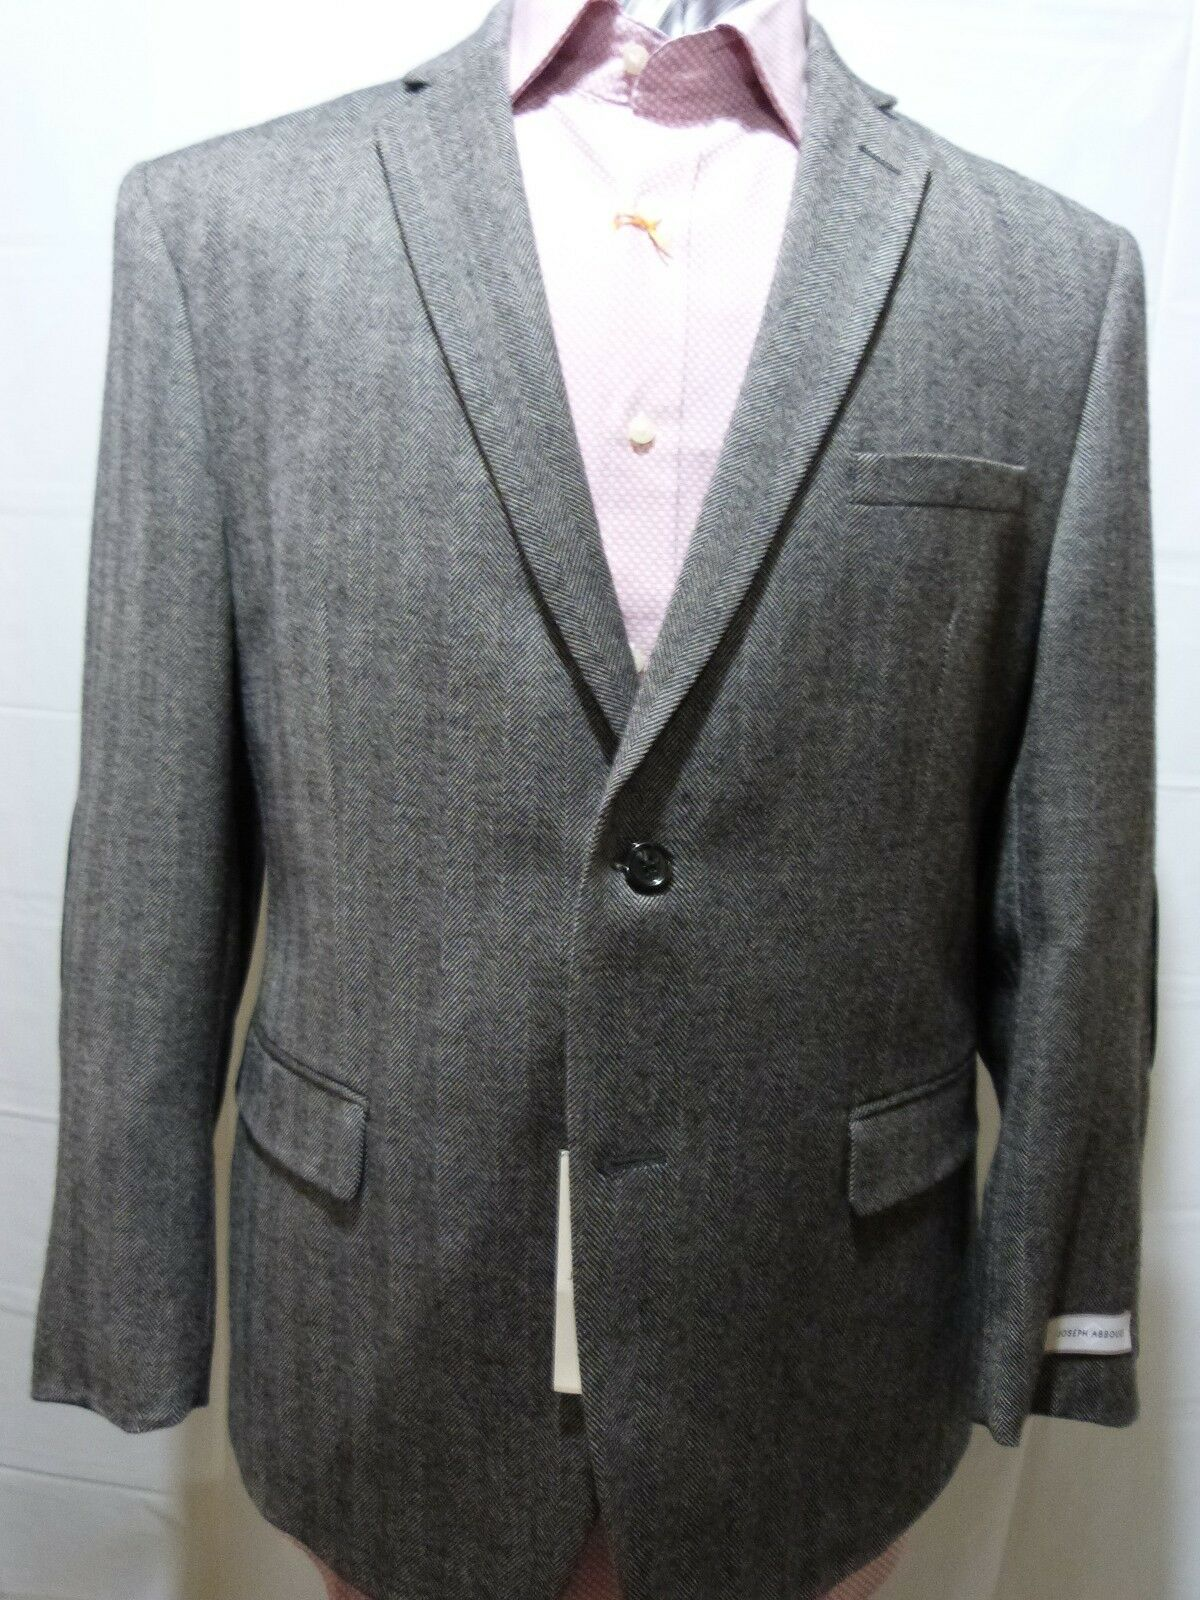 Joseph Abboud Uomo Elbow Two Button,Sport Coat with Elbow Uomo Patches, Gris, 42S, NWT 283e16